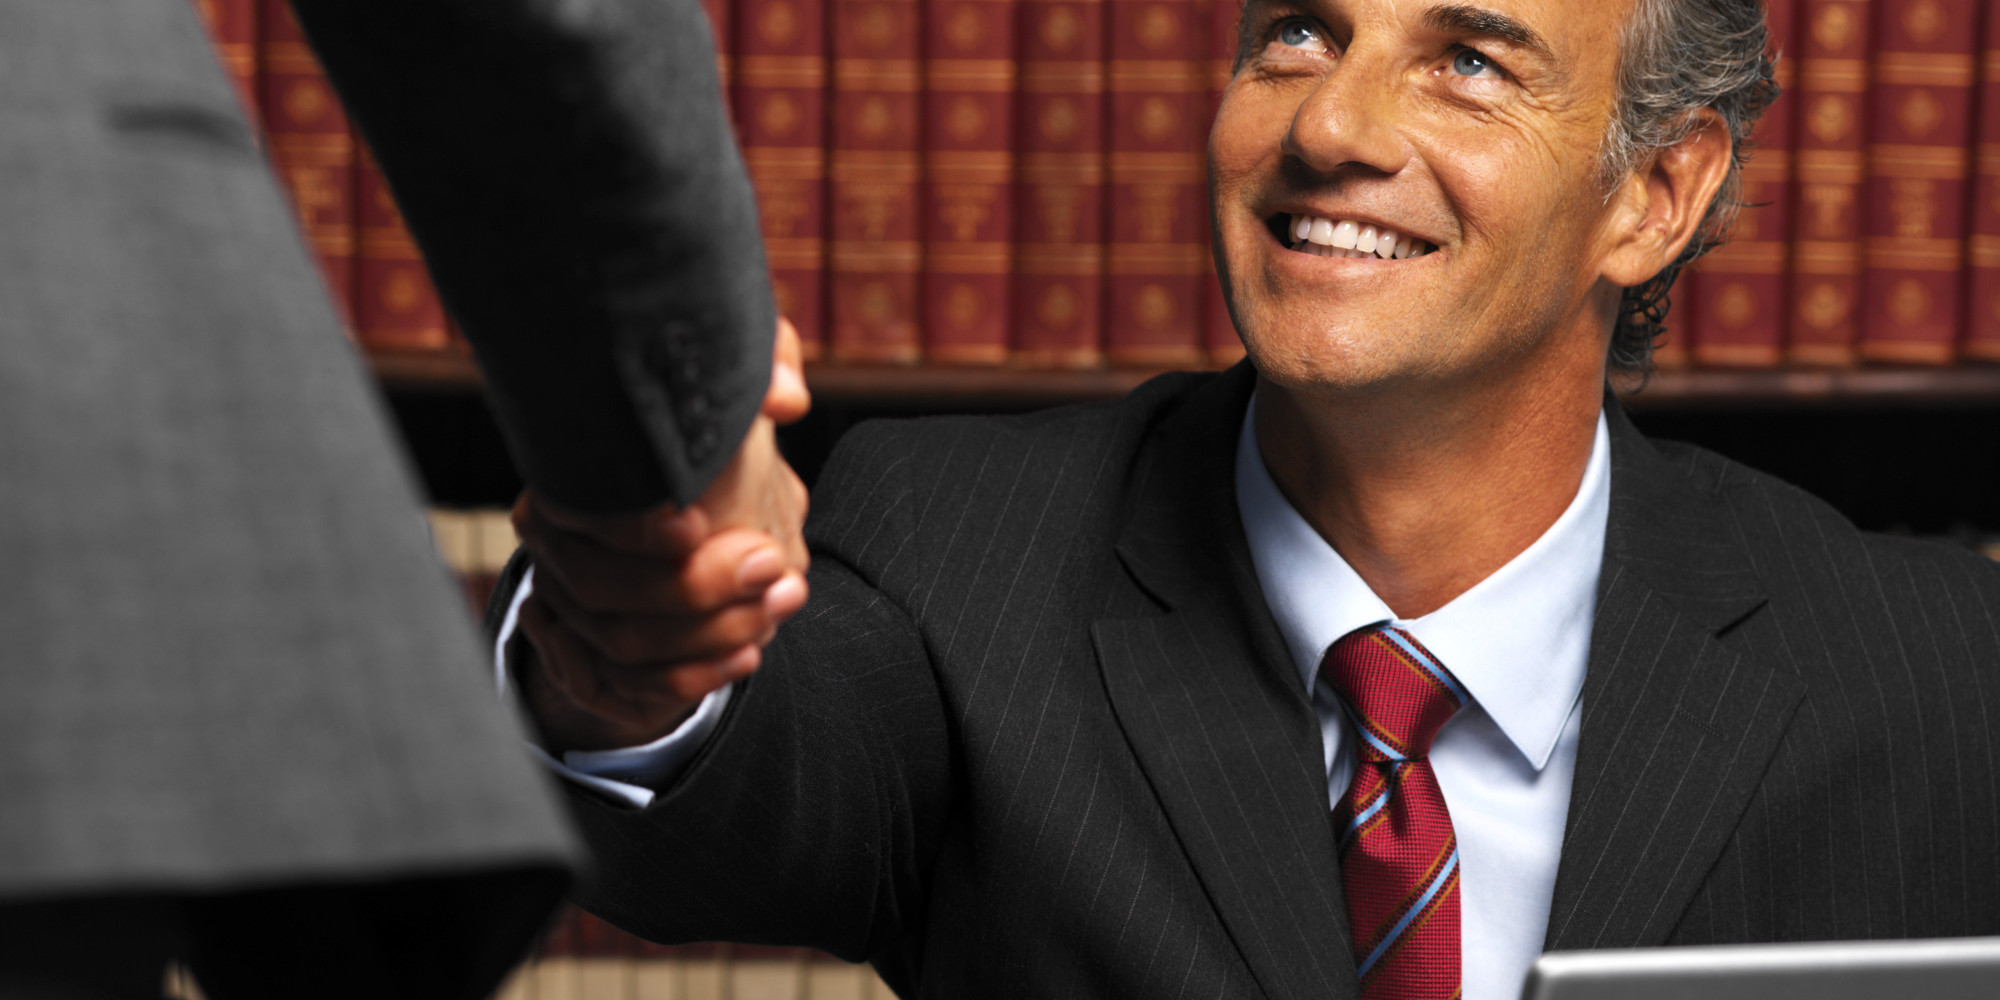 Tips to Quickly and Easily Find a Good Lawyer